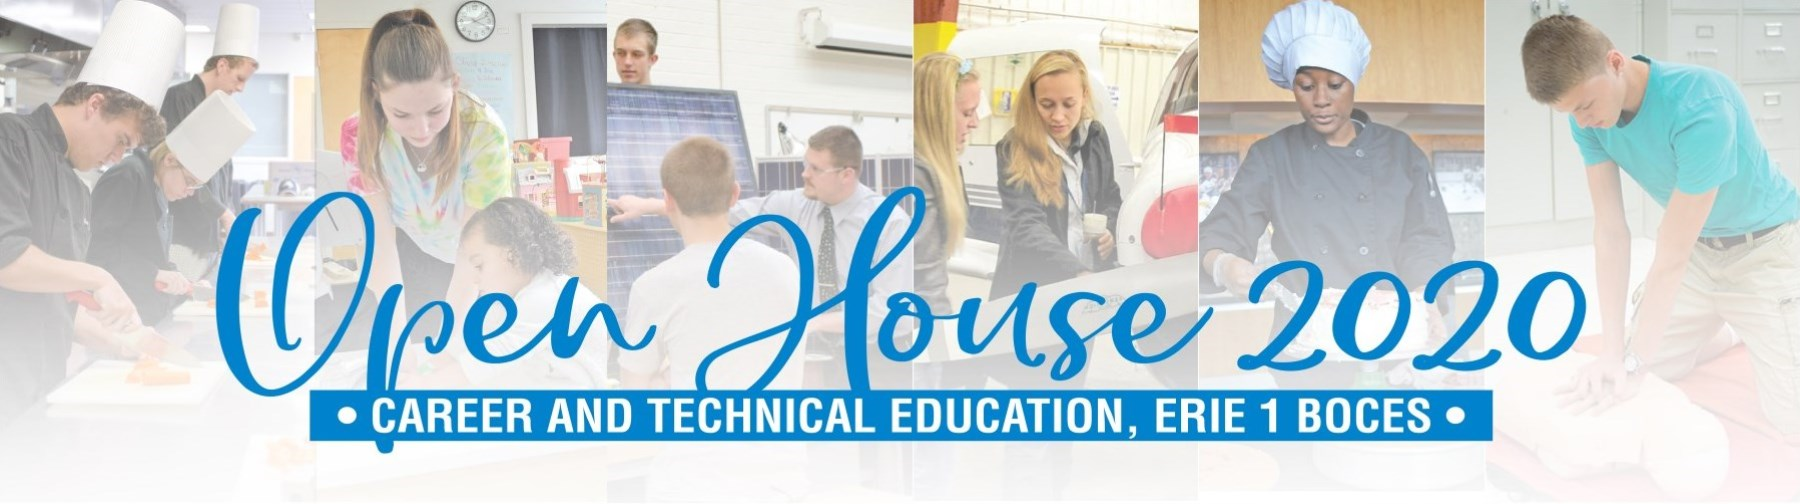 Open House 2020 Career and Technical Education, Erie 1 BOCES